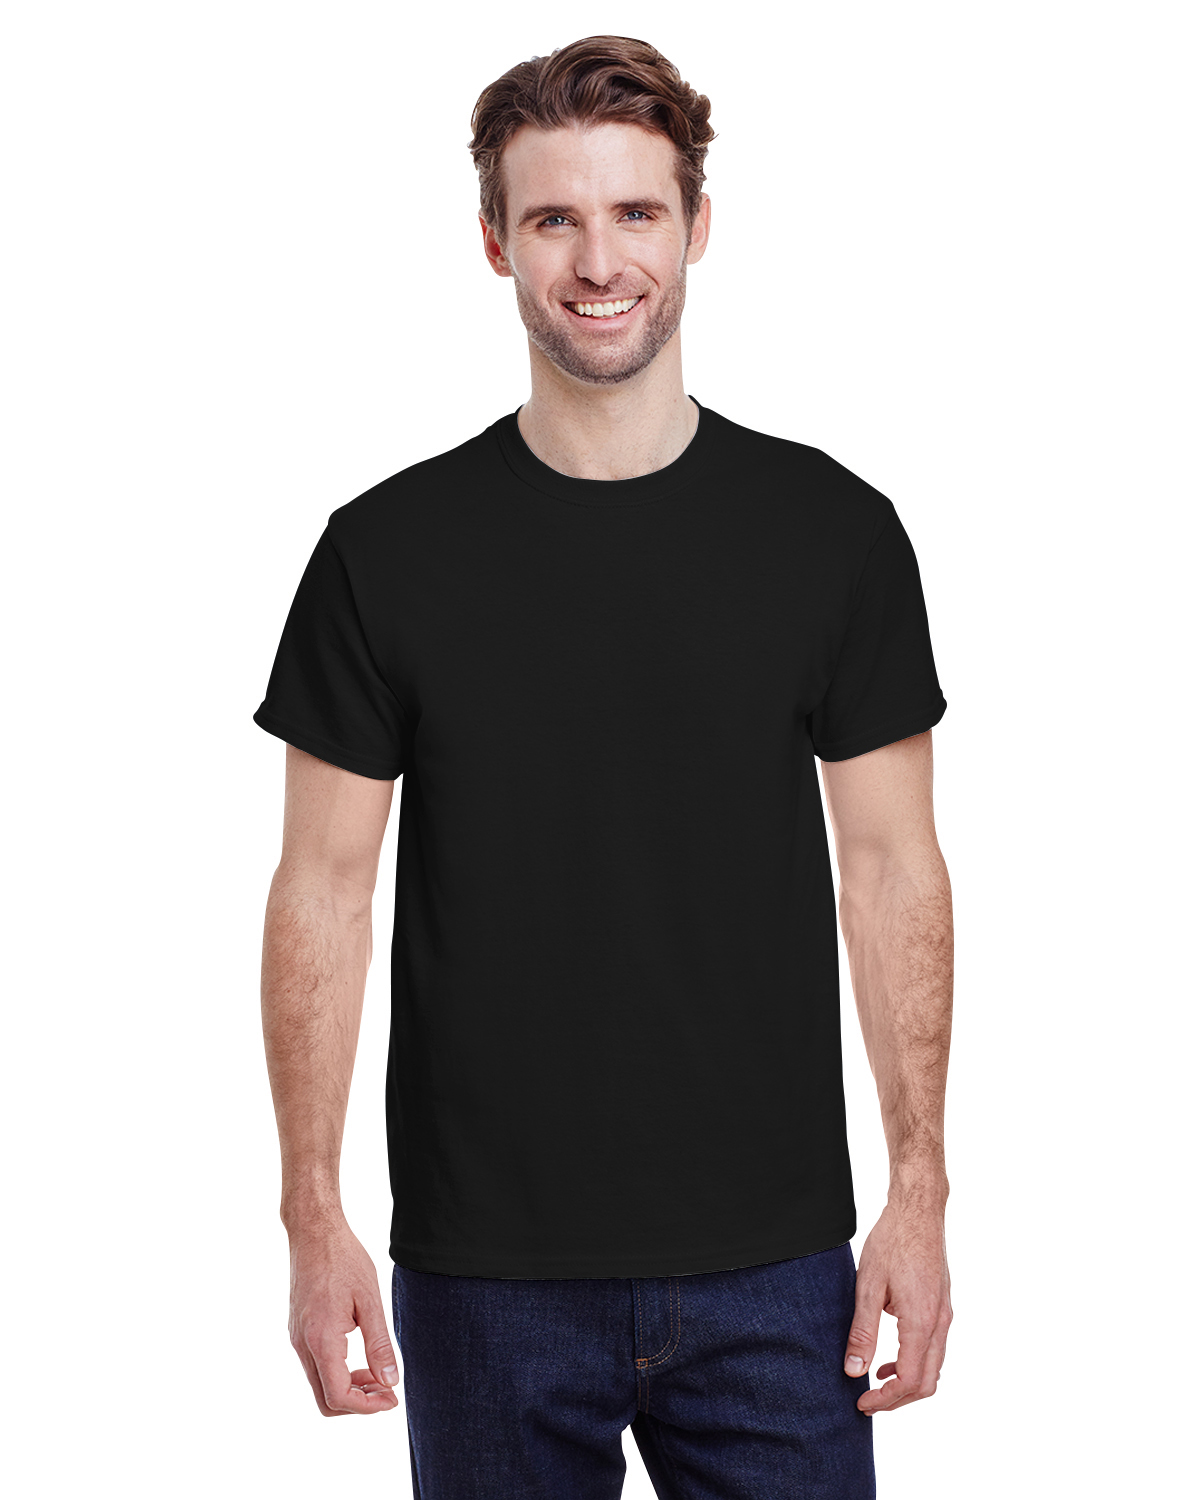 CLUB-G500 Gildan 100% Cotton T-shirt  (COPY)